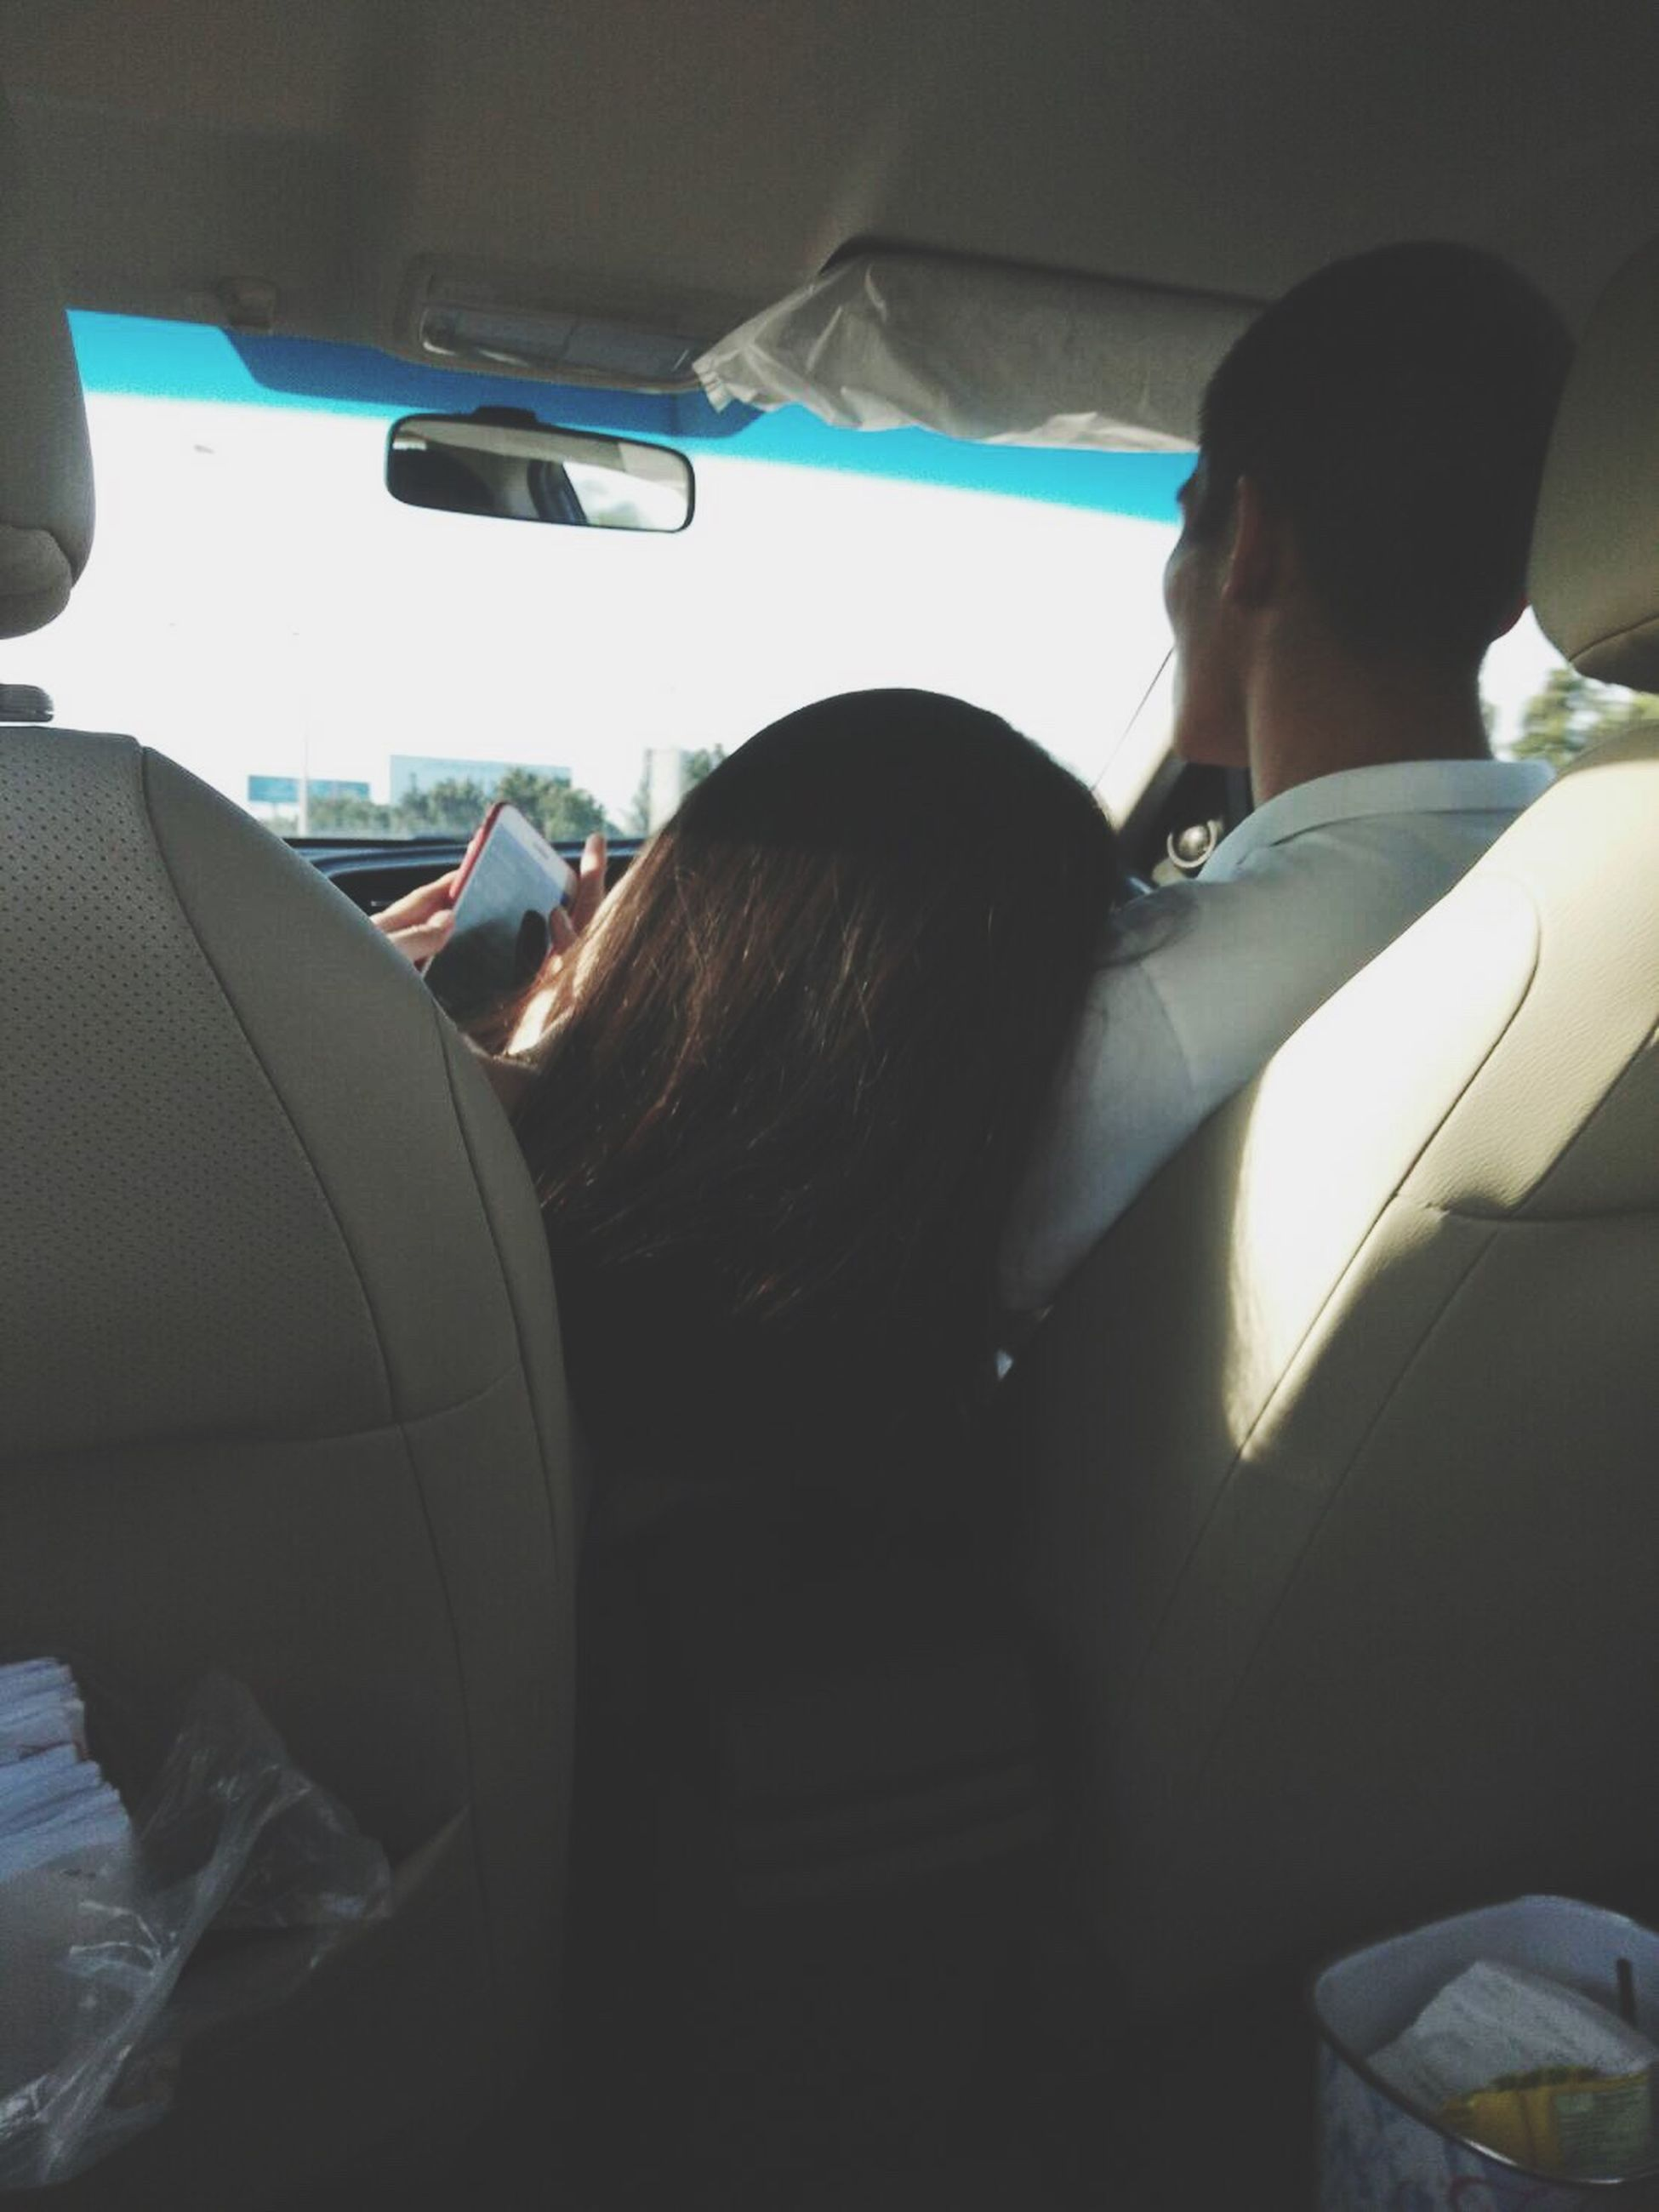 vehicle interior, car, car interior, transportation, mode of transport, land vehicle, rear view, travel, journey, real people, vehicle seat, road trip, two people, driving, young women, togetherness, friendship, women, lifestyles, day, young adult, sitting, passenger seat